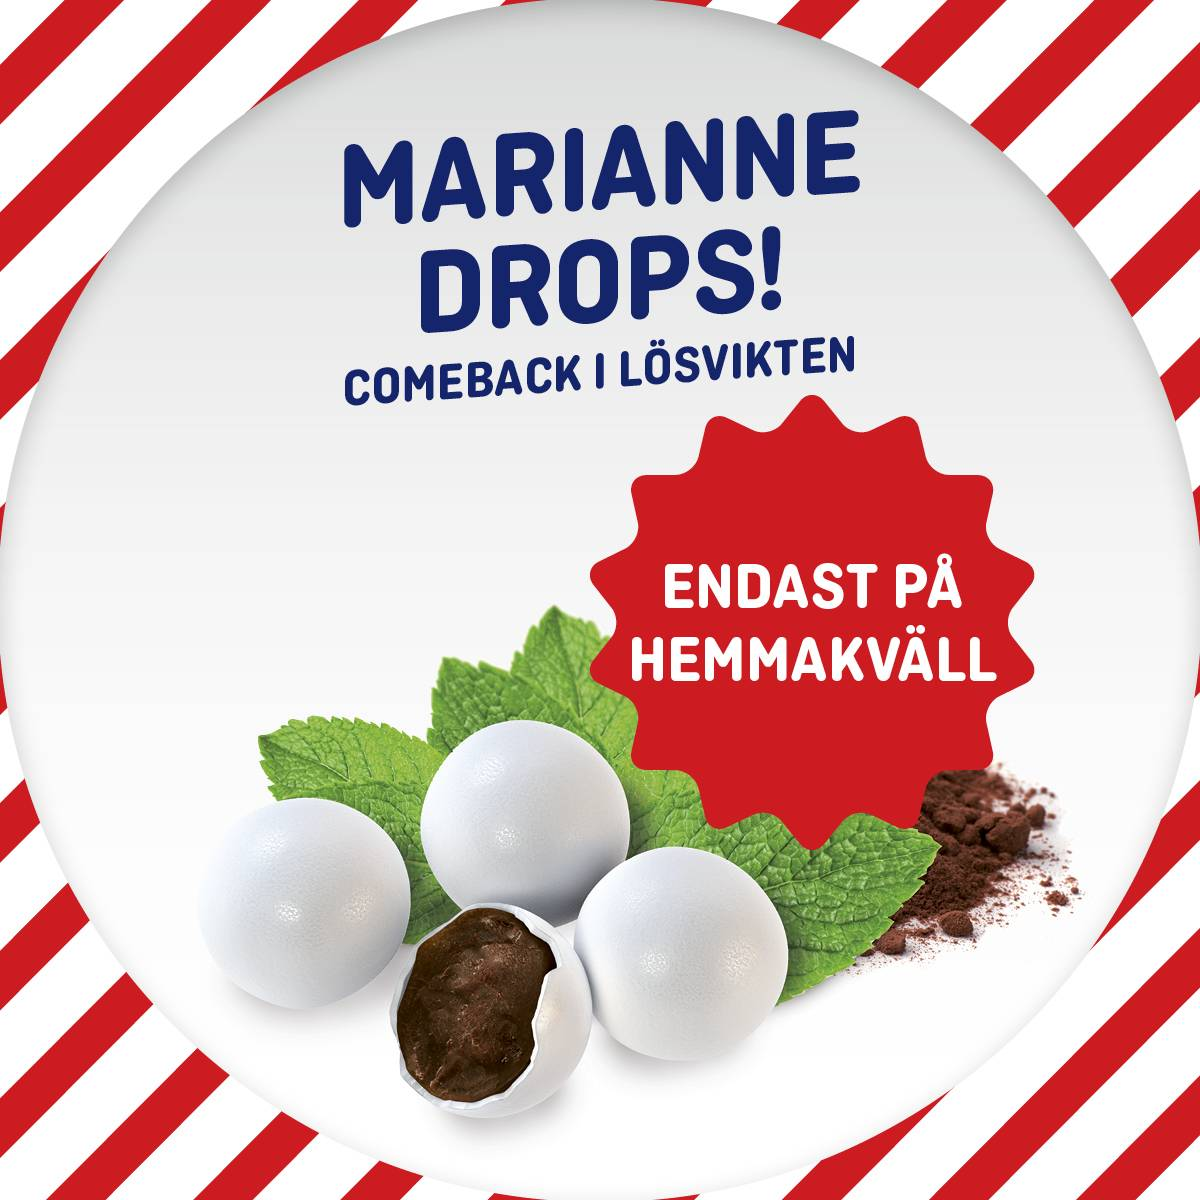 marianne-drops-release_enews_1200x1200